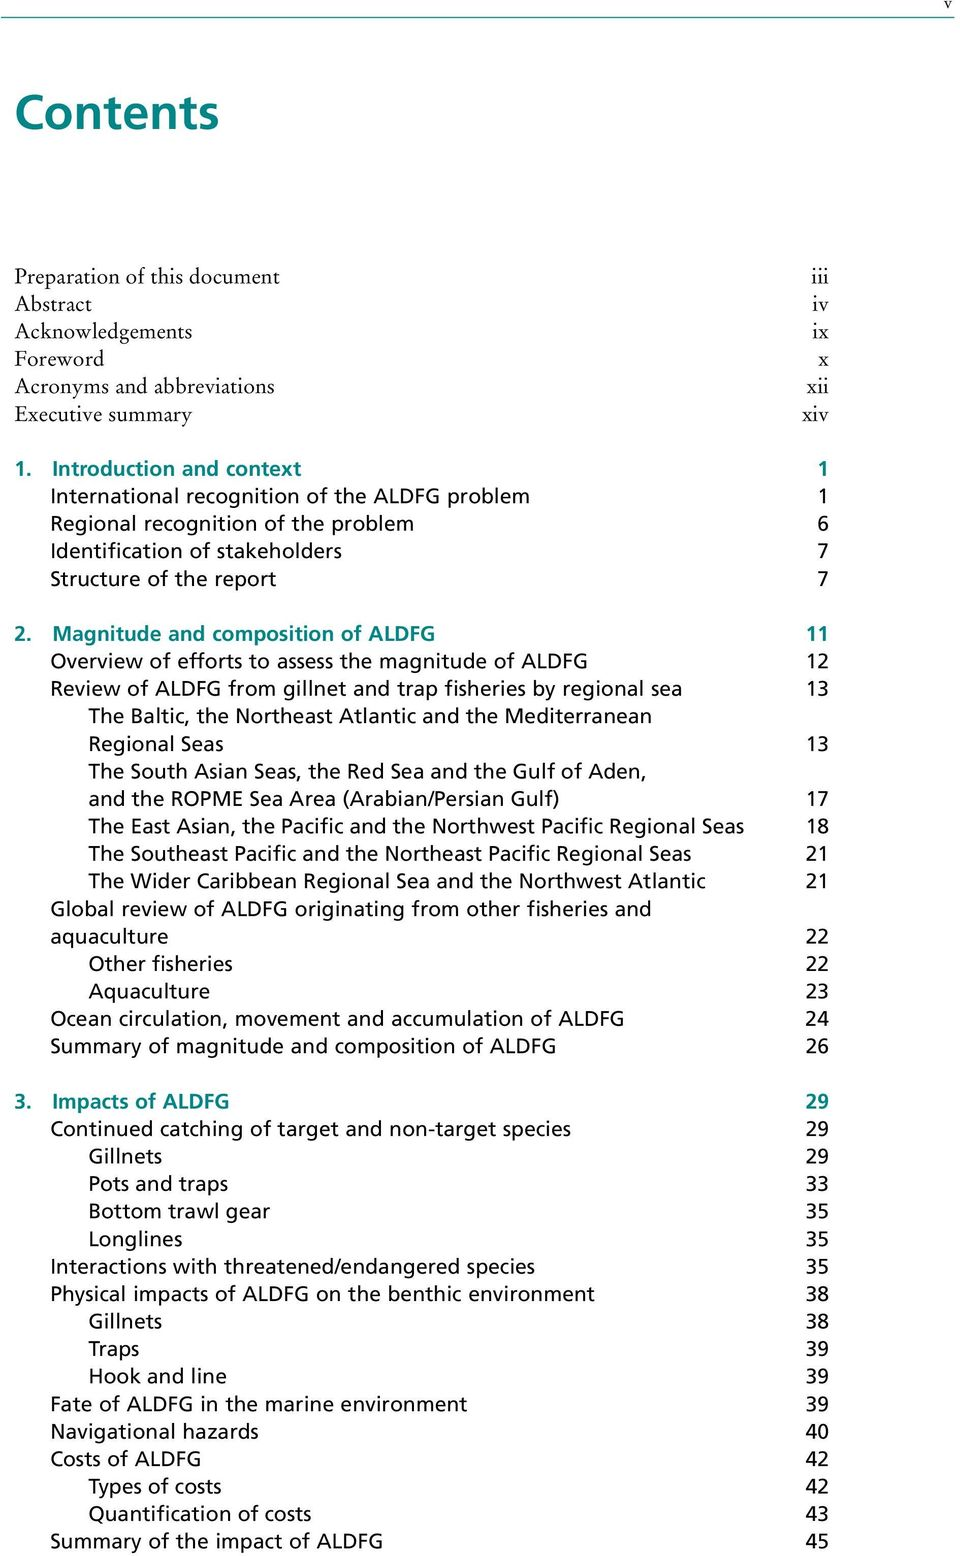 Magnitude and composition of ALDFG 11 Overview of efforts to assess the magnitude of ALDFG 12 Review of ALDFG from gillnet and trap fisheries by regional sea 13 The Baltic, the Northeast Atlantic and